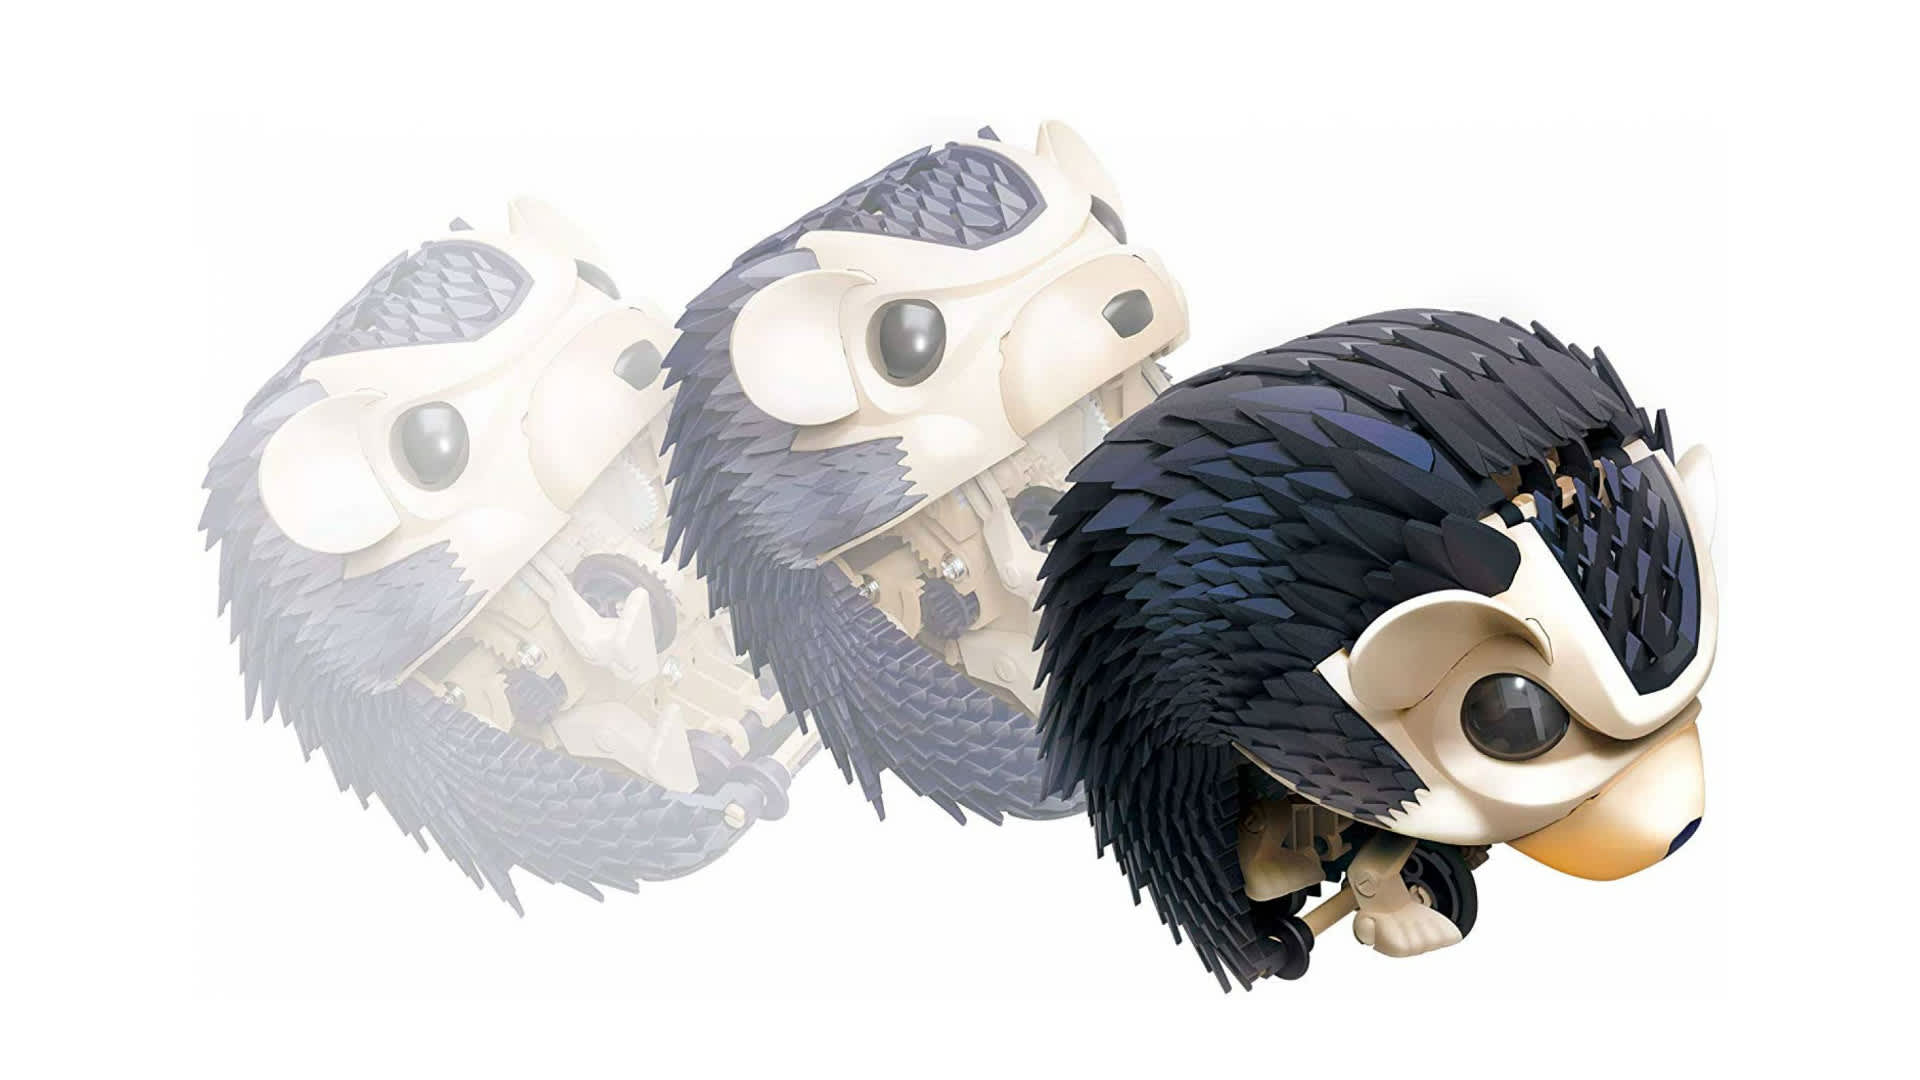 My Robotic Pet: Tumbling Hedgehog is a STEM experiment kit from Thames & Kosmos.